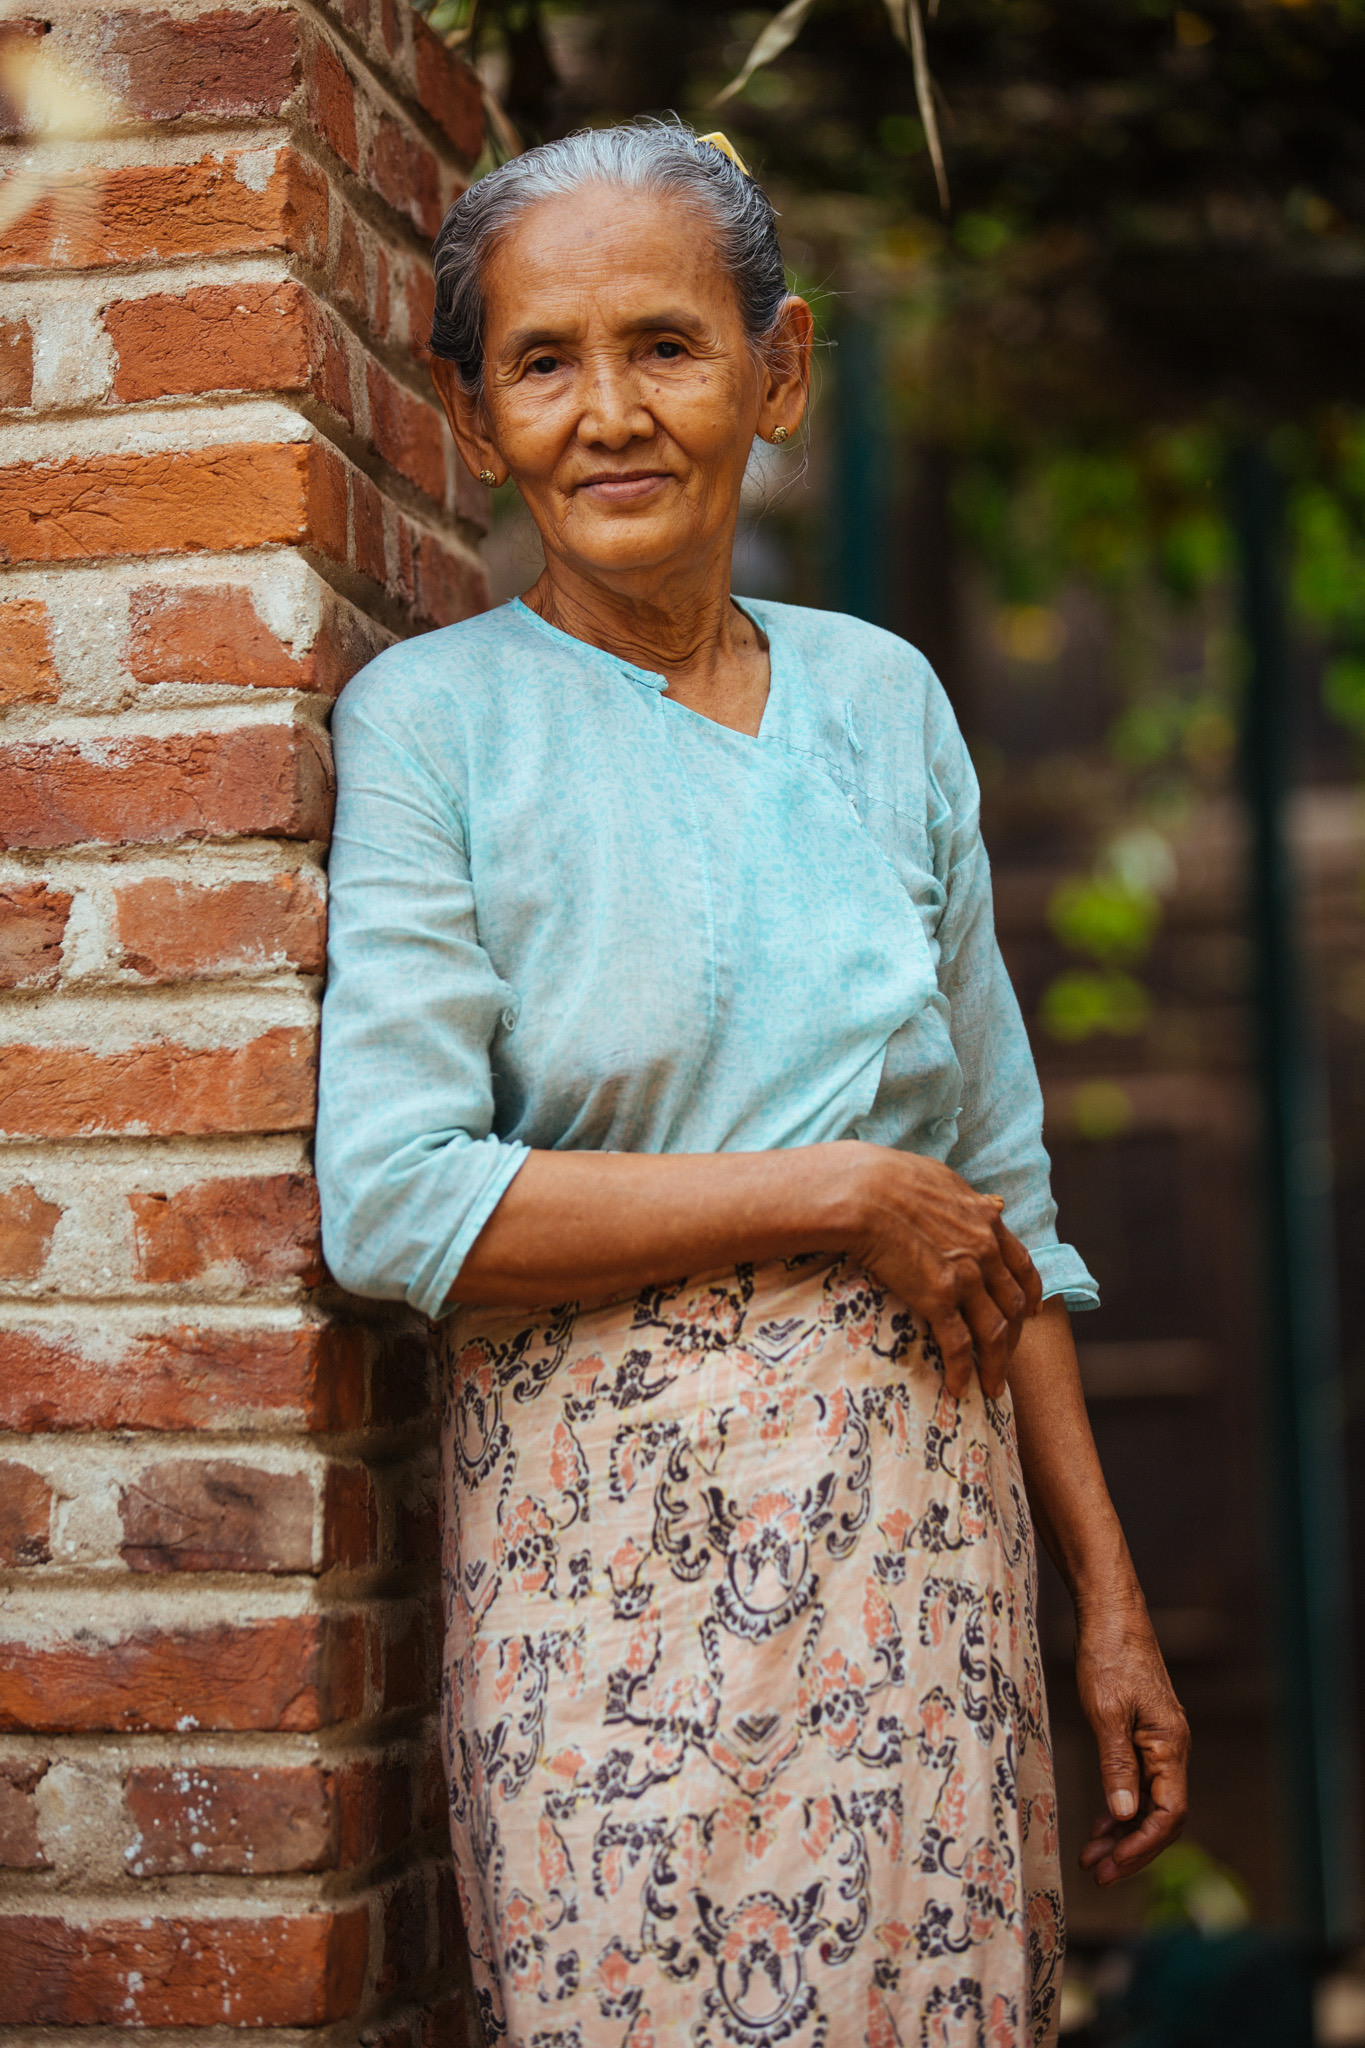 An elderly woman agrees to be photographed. Perhaps due to their religious nature, the Burmese people are naturally warm-hearted and kind spirited.